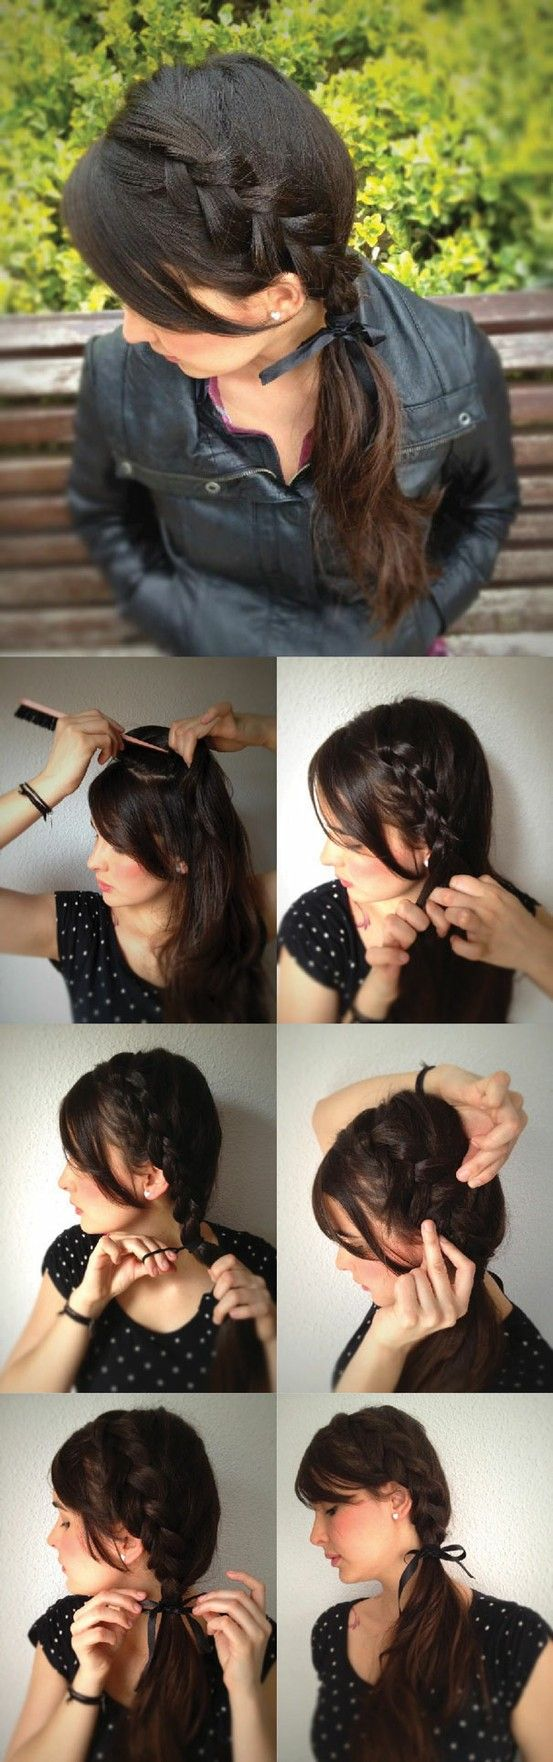 cute: Hairstyles, Hair Styles, Hairdos, Hair Do, Side Ponytail, Side Braids